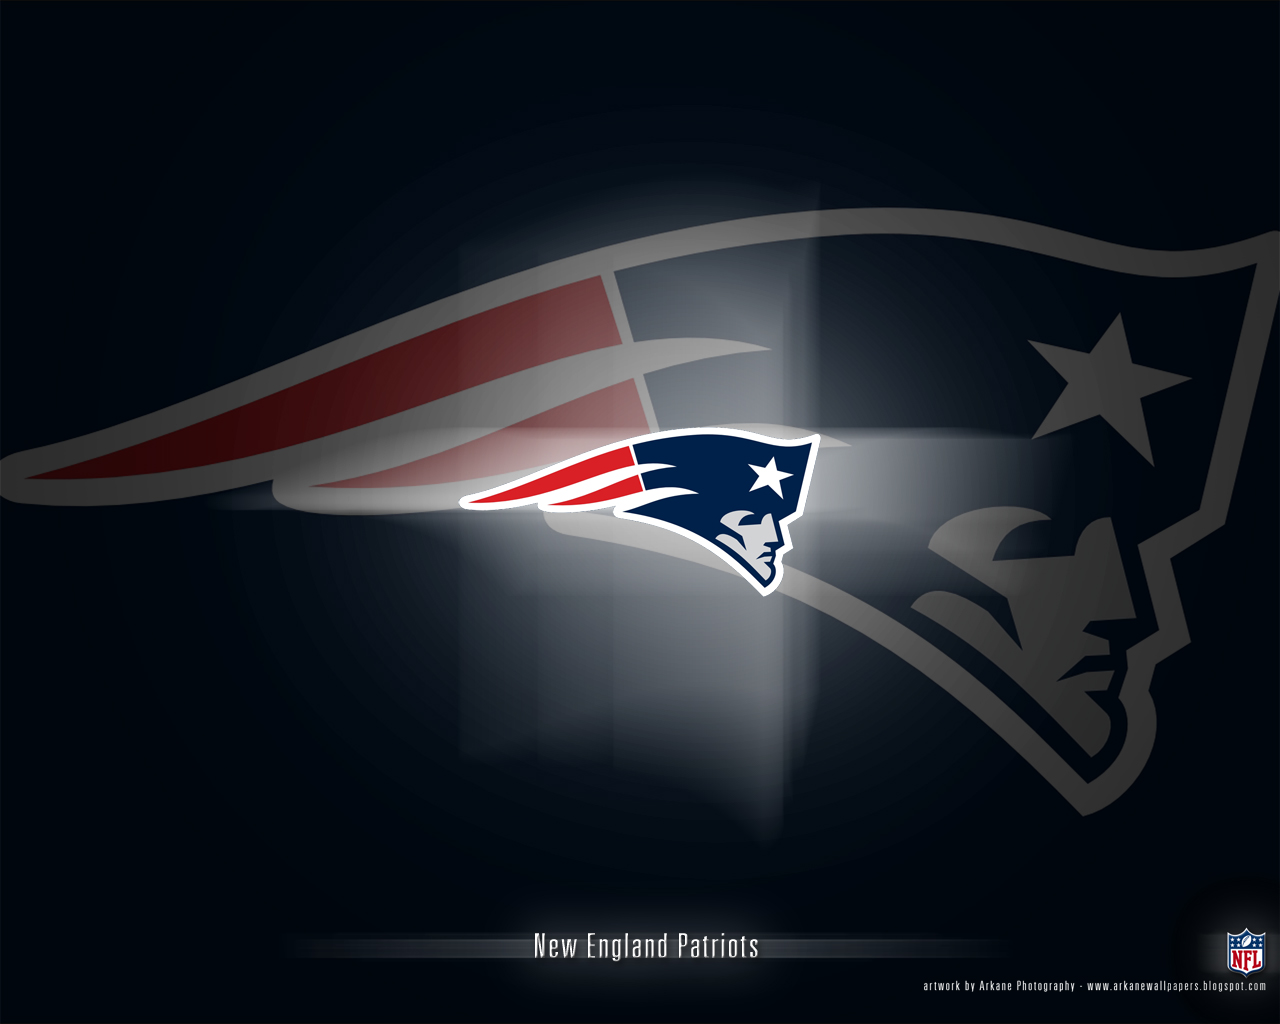 Arkane NFL Wallpapers: New England Patriots - Vol. 1